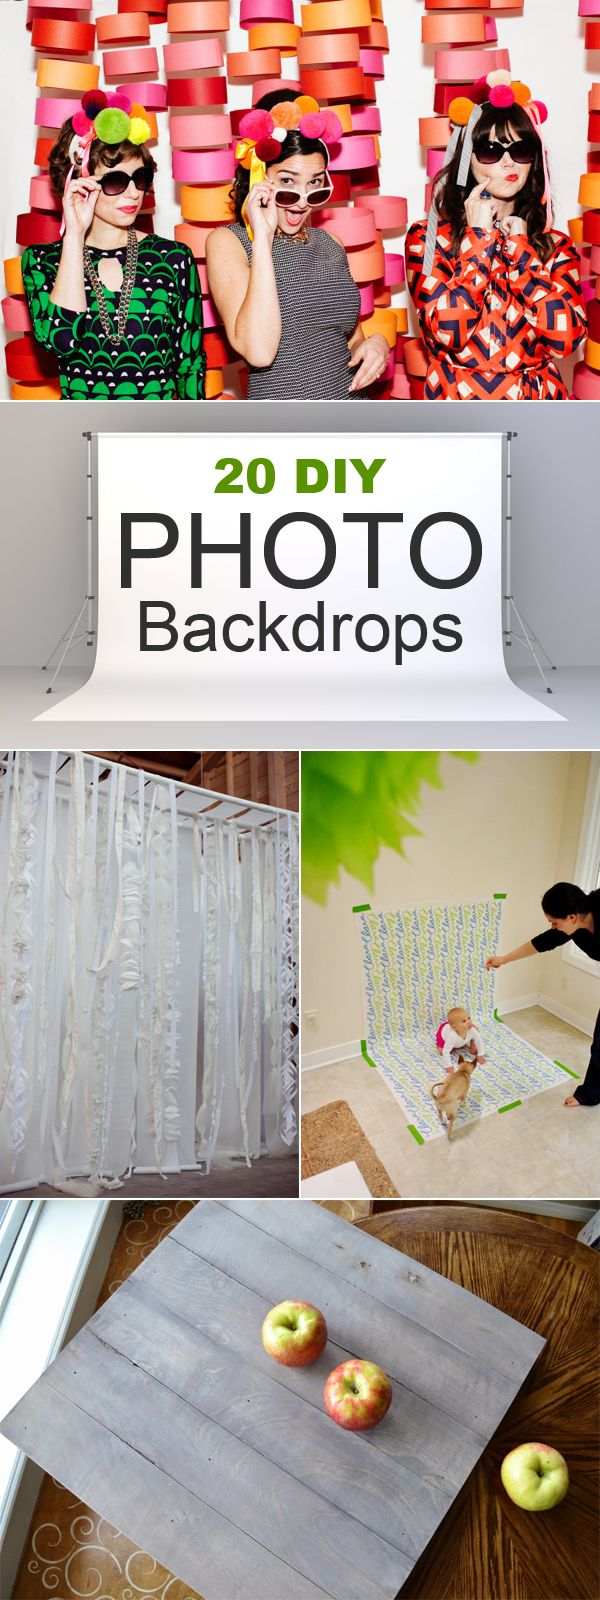 Burlap curtains are you kidding me what a backdrop - 20 Diy Photo Backdrops That Will Make Your Photos Beautiful